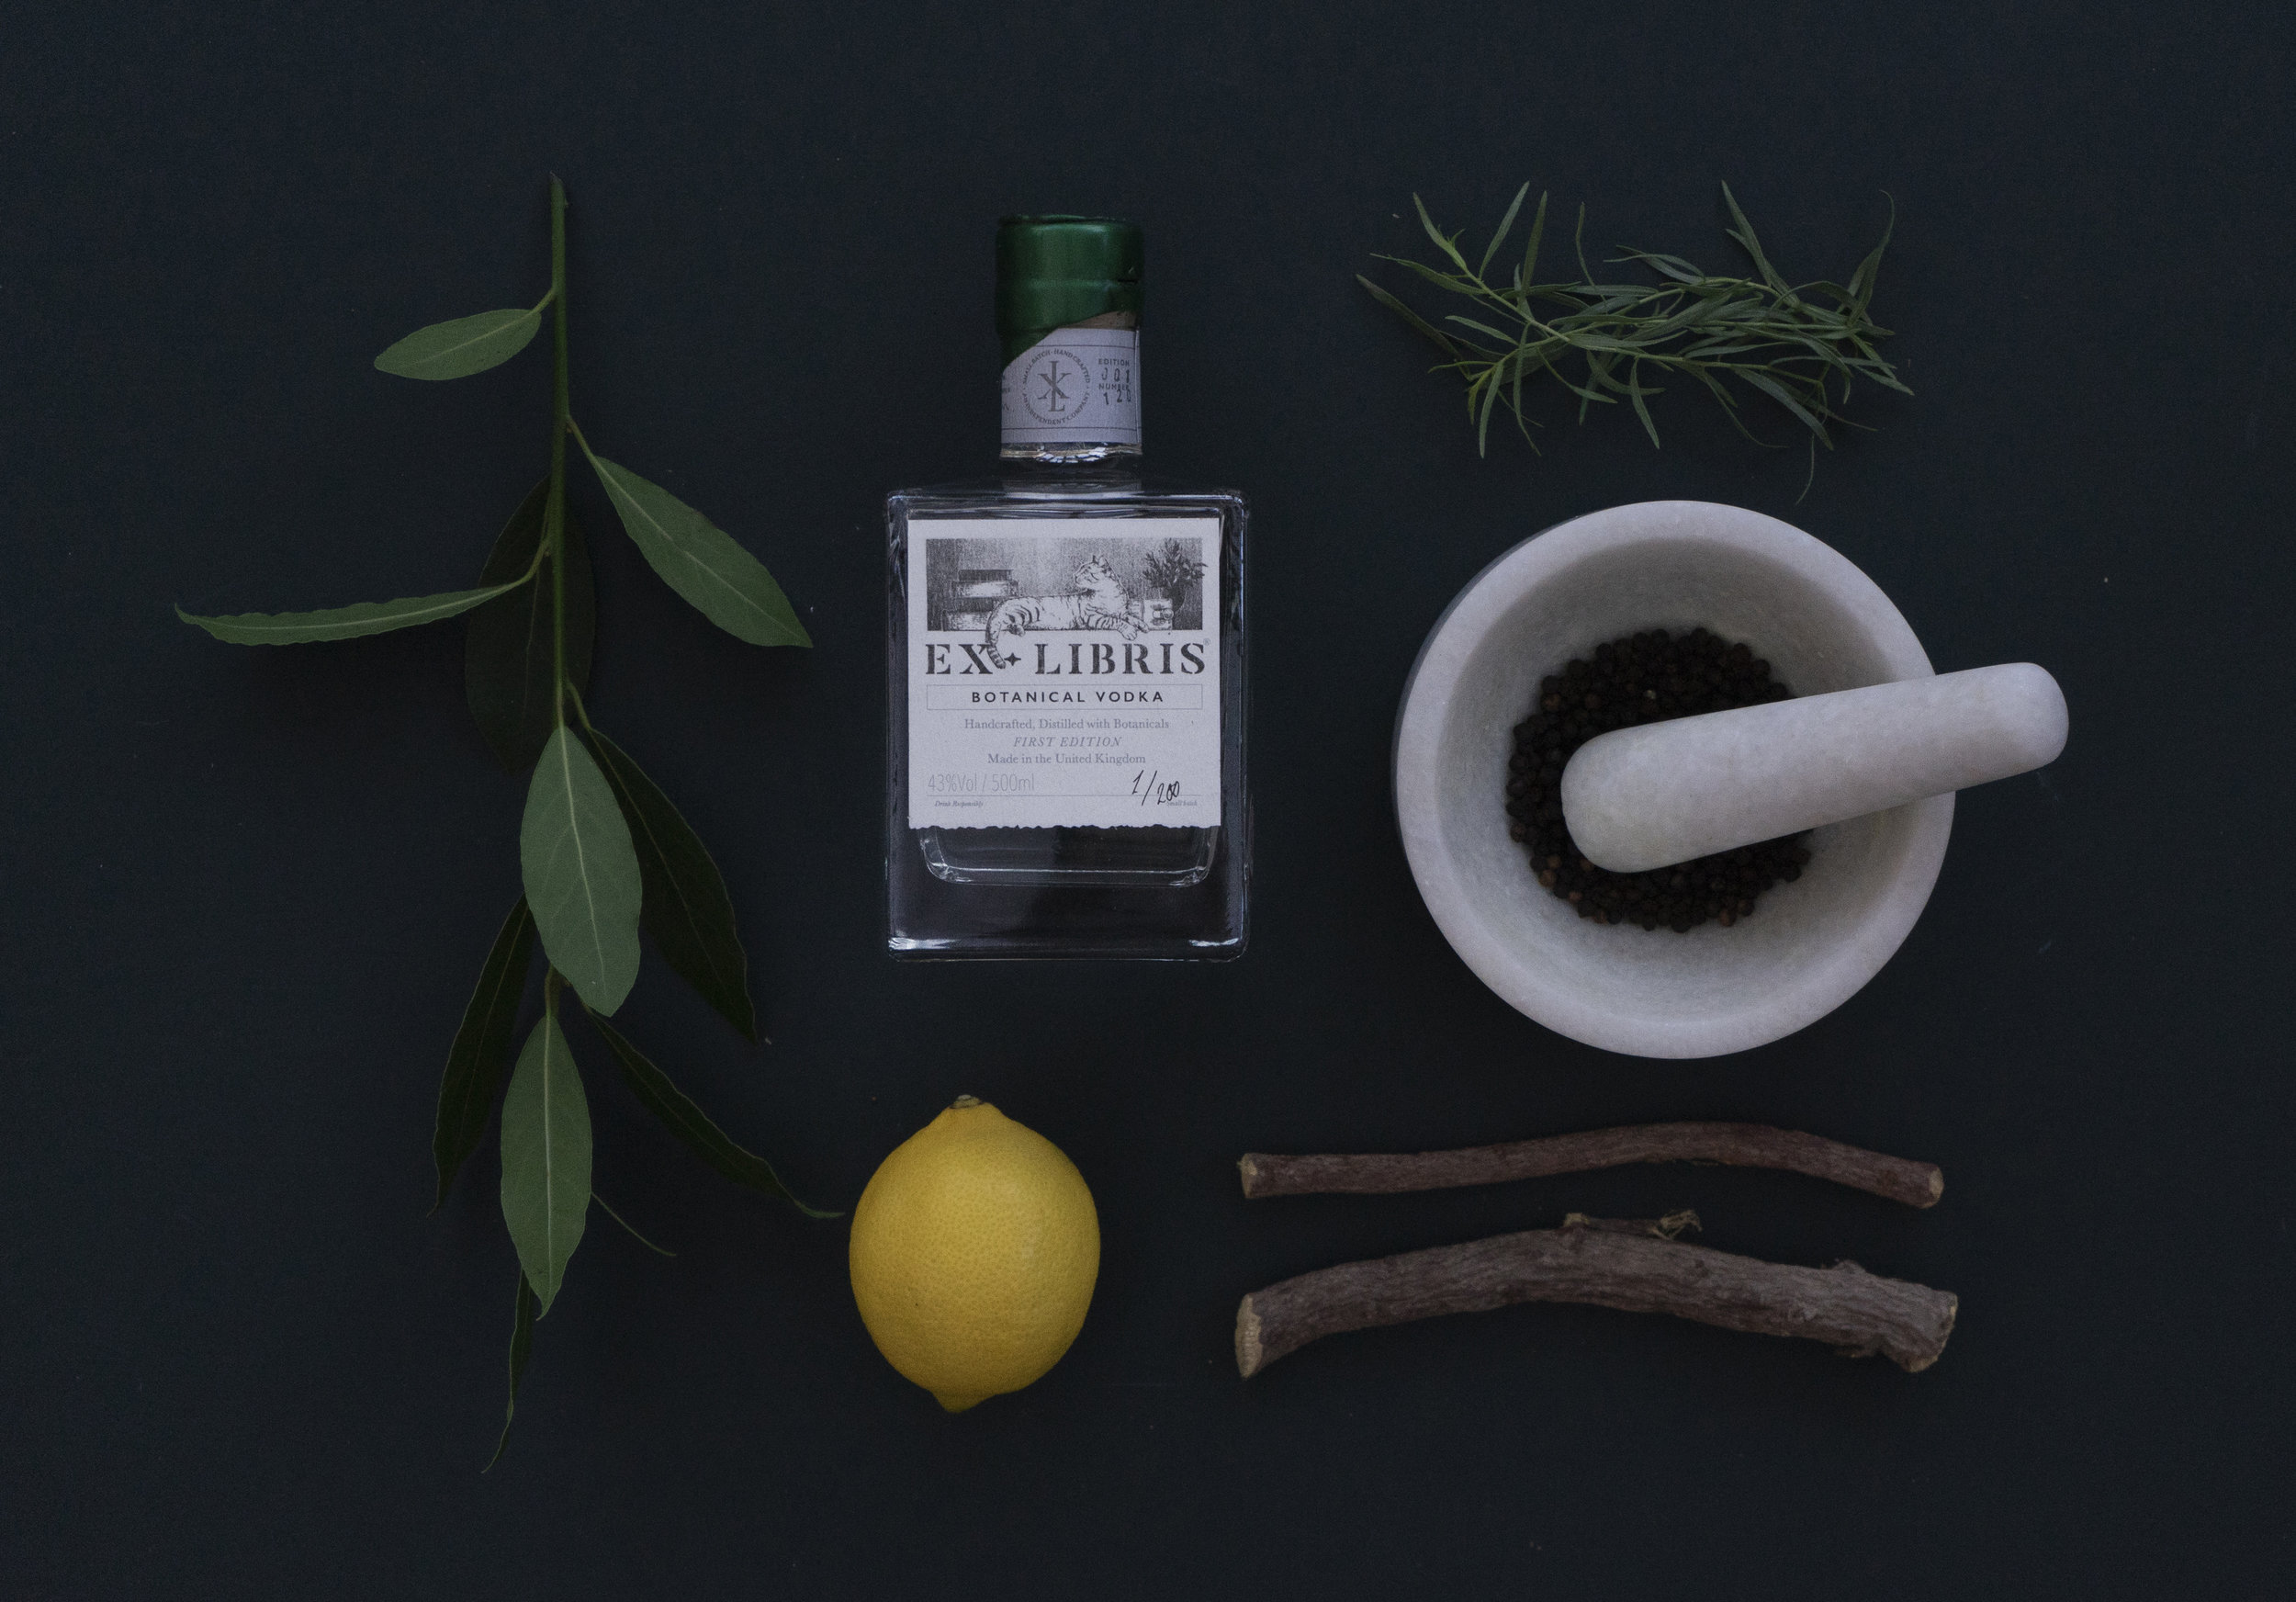 EXLIBRIS with some of it's botanicals - Bay, Lemon, Tarragon, Black Pepper & Liquorice Root.